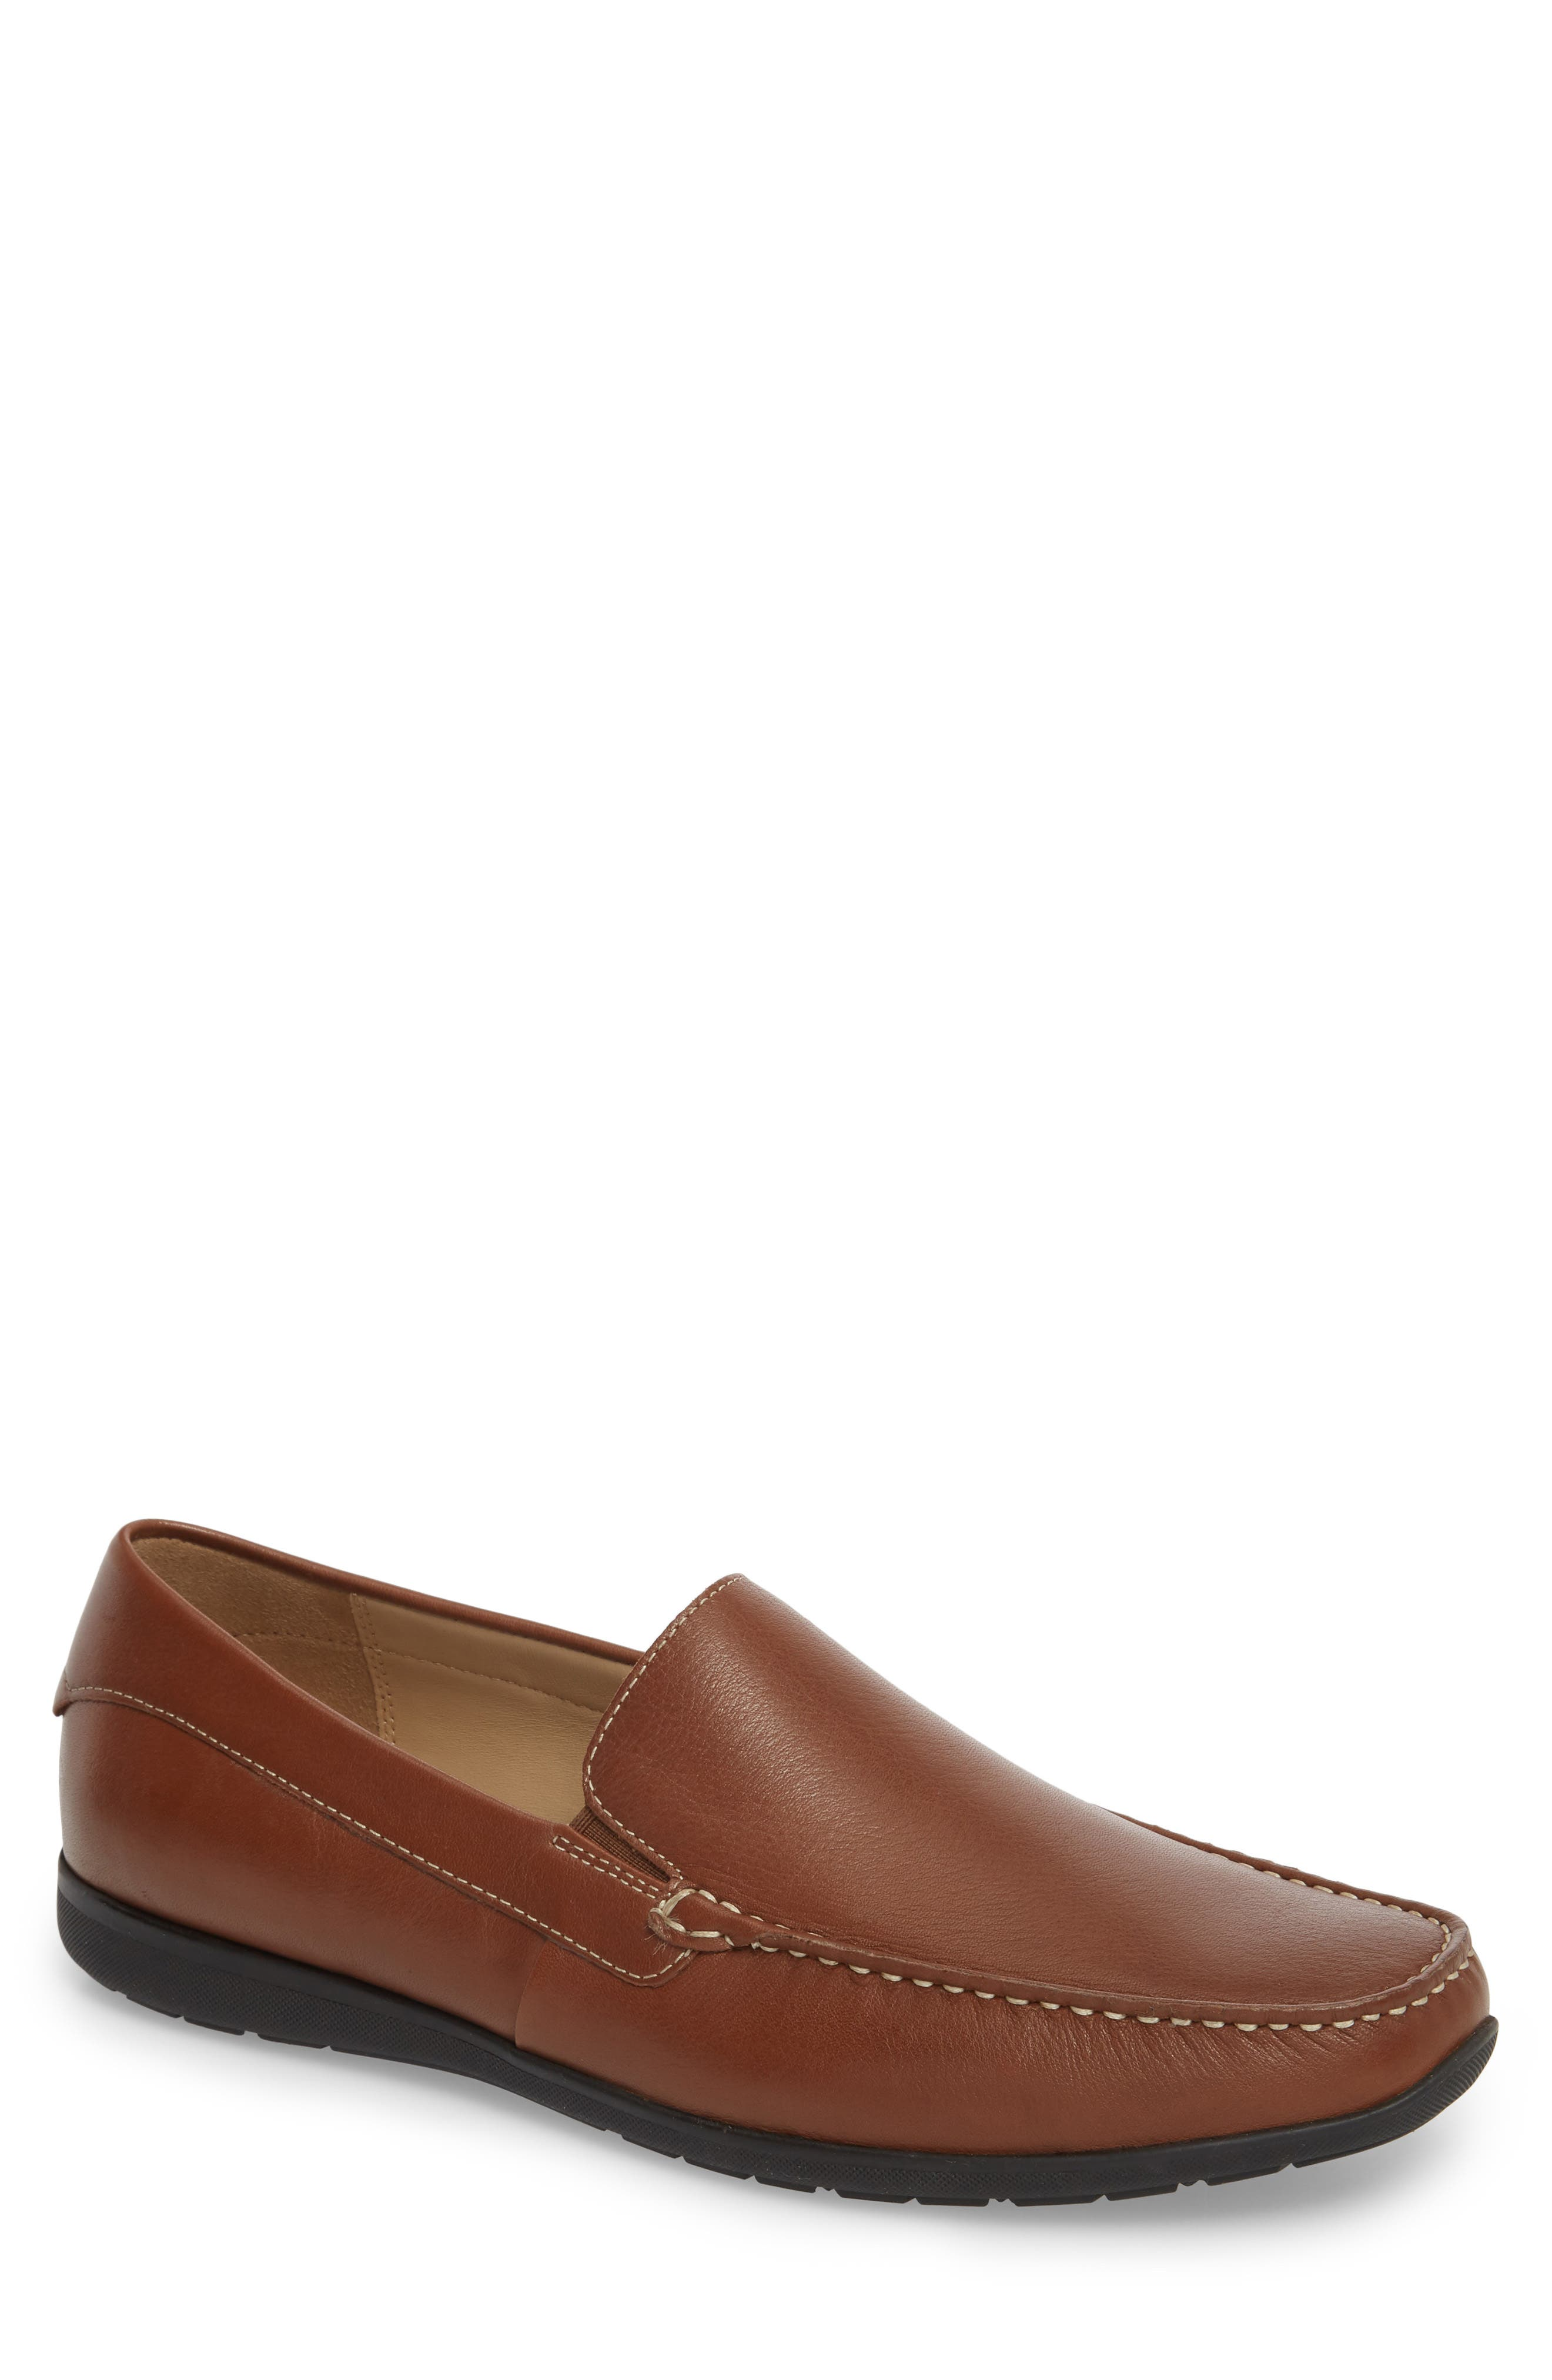 Classic Loafer,                             Main thumbnail 1, color,                             Lion